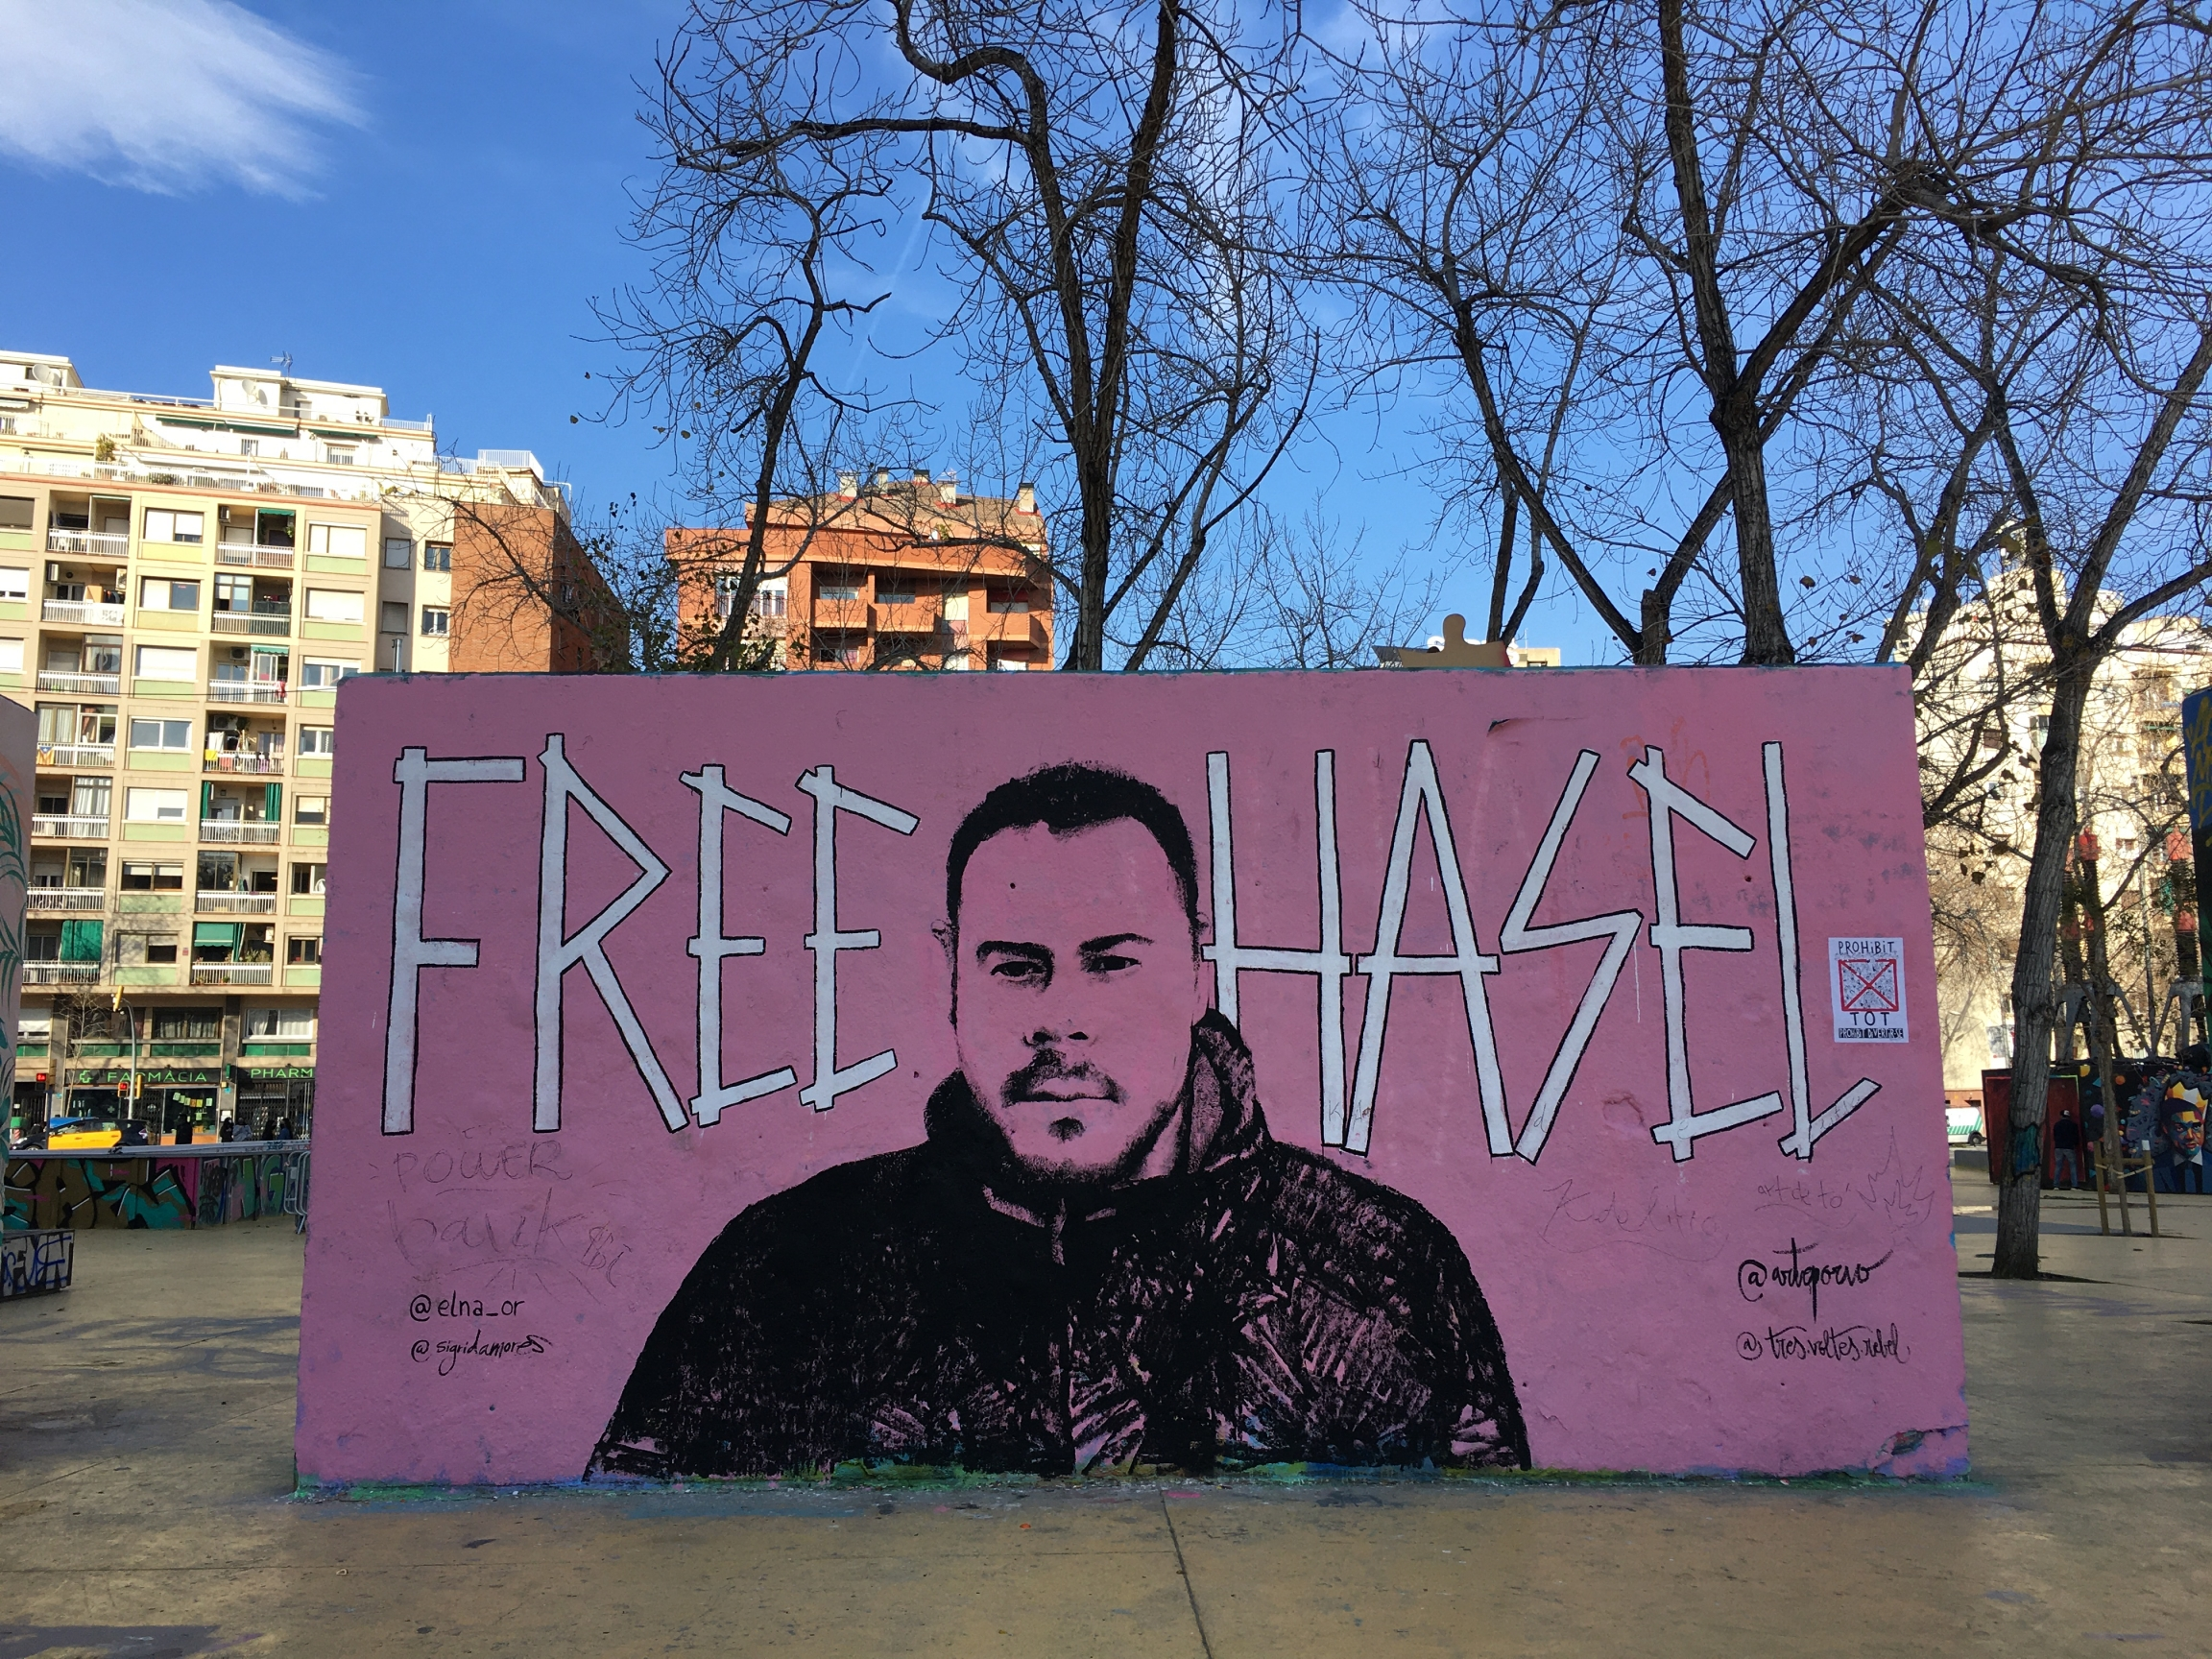 Protesters across Spain have taken to the streets to demand rapper Pablo Hasél's release from prison and murals like this one have gone up across the country. This one from downtown Barcelona was painted earlier in the month, before the rapper's recent ar